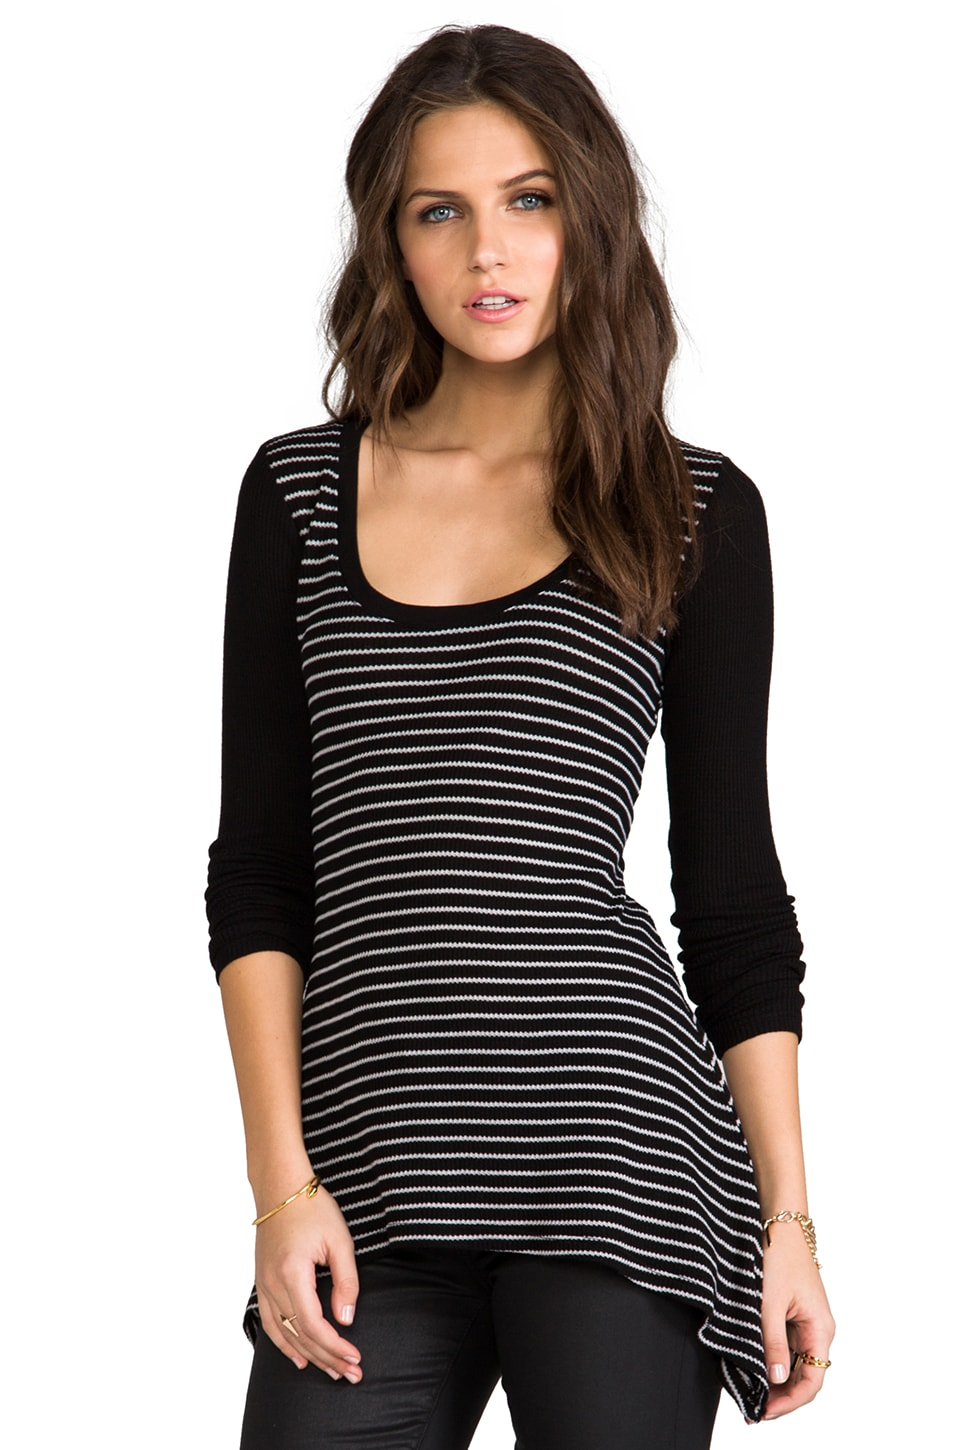 Saint Grace Thermal Maritza Stripe Top in Black